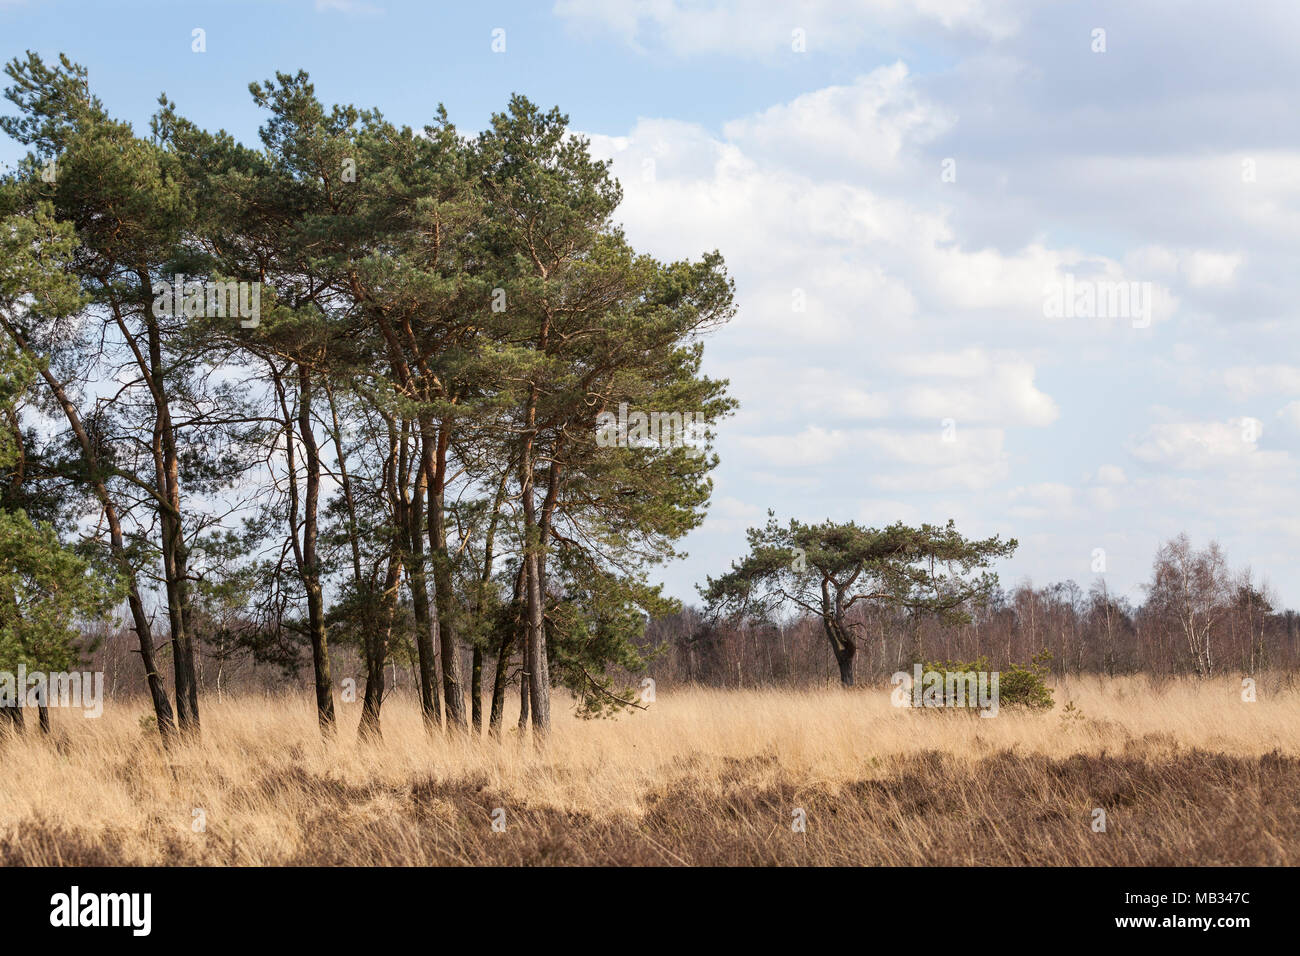 Landscape with spruce trees and grass at national park 'de Groote Peel' in the Netherlands - Stock Image